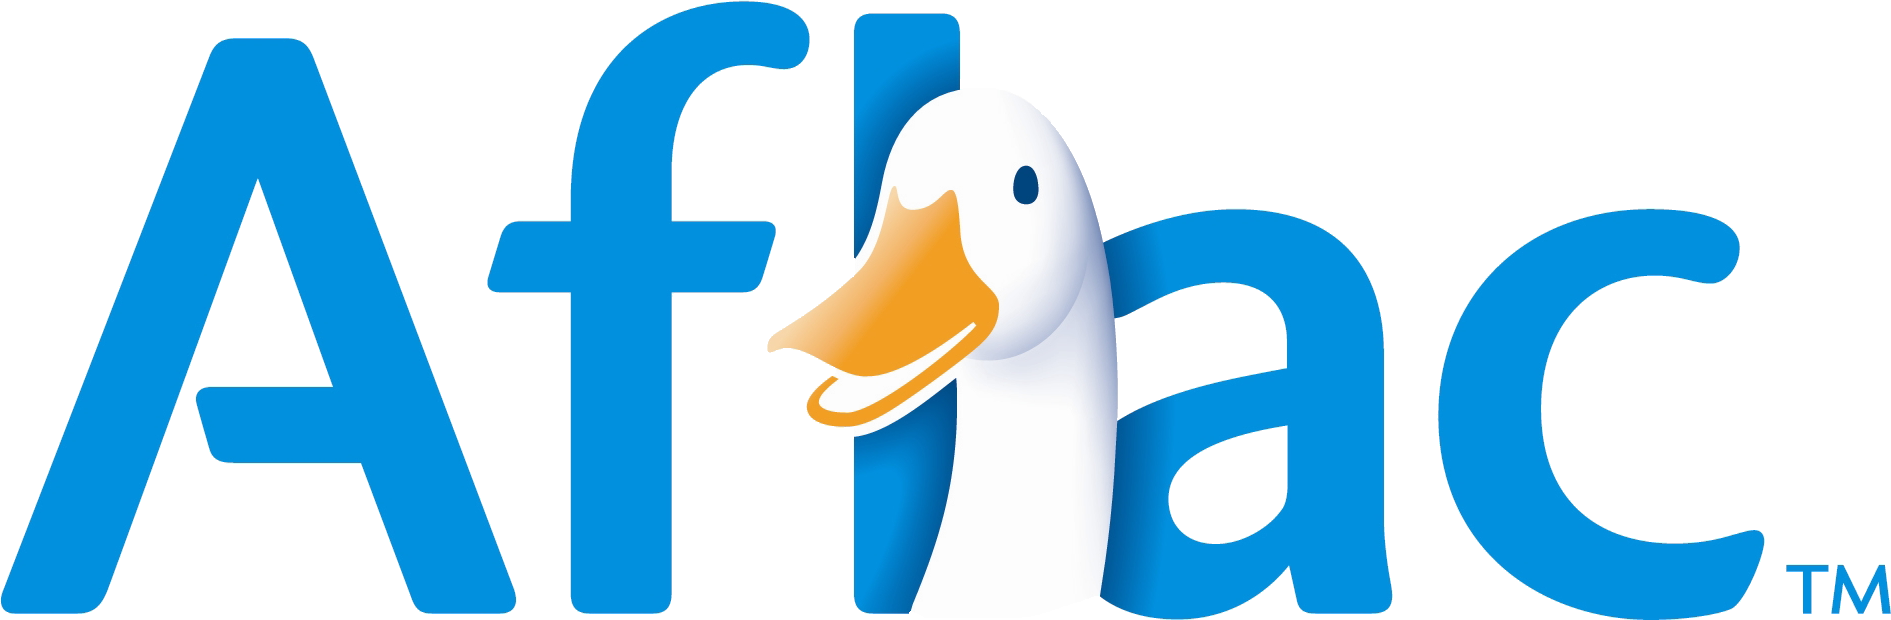 Aflac duck Advertising mascots/pitchmen Seo agency